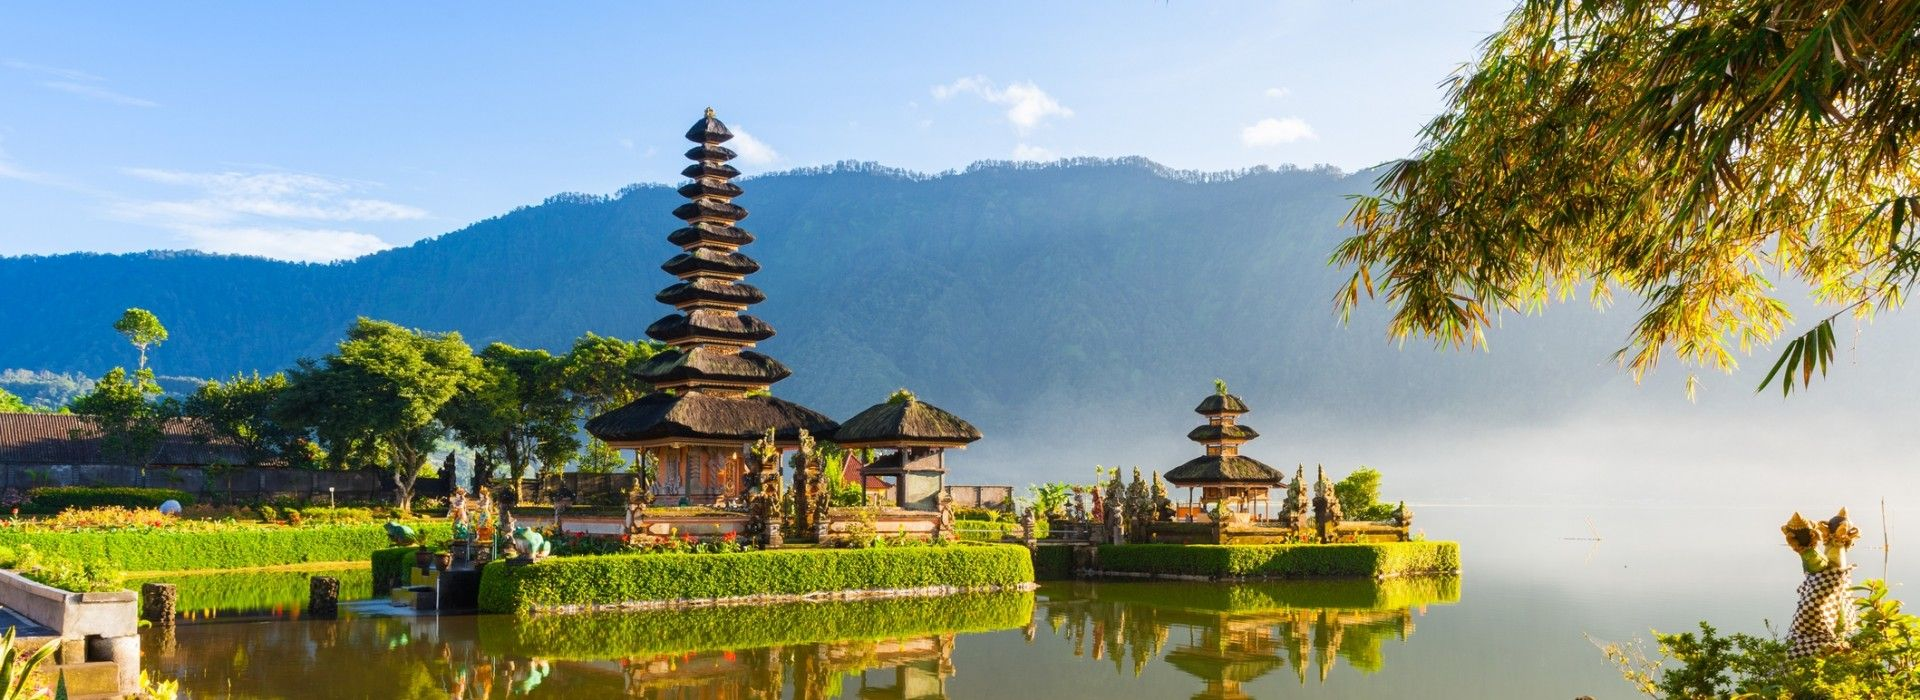 Cultural, religious and historic sites Tours in Yogyakarta